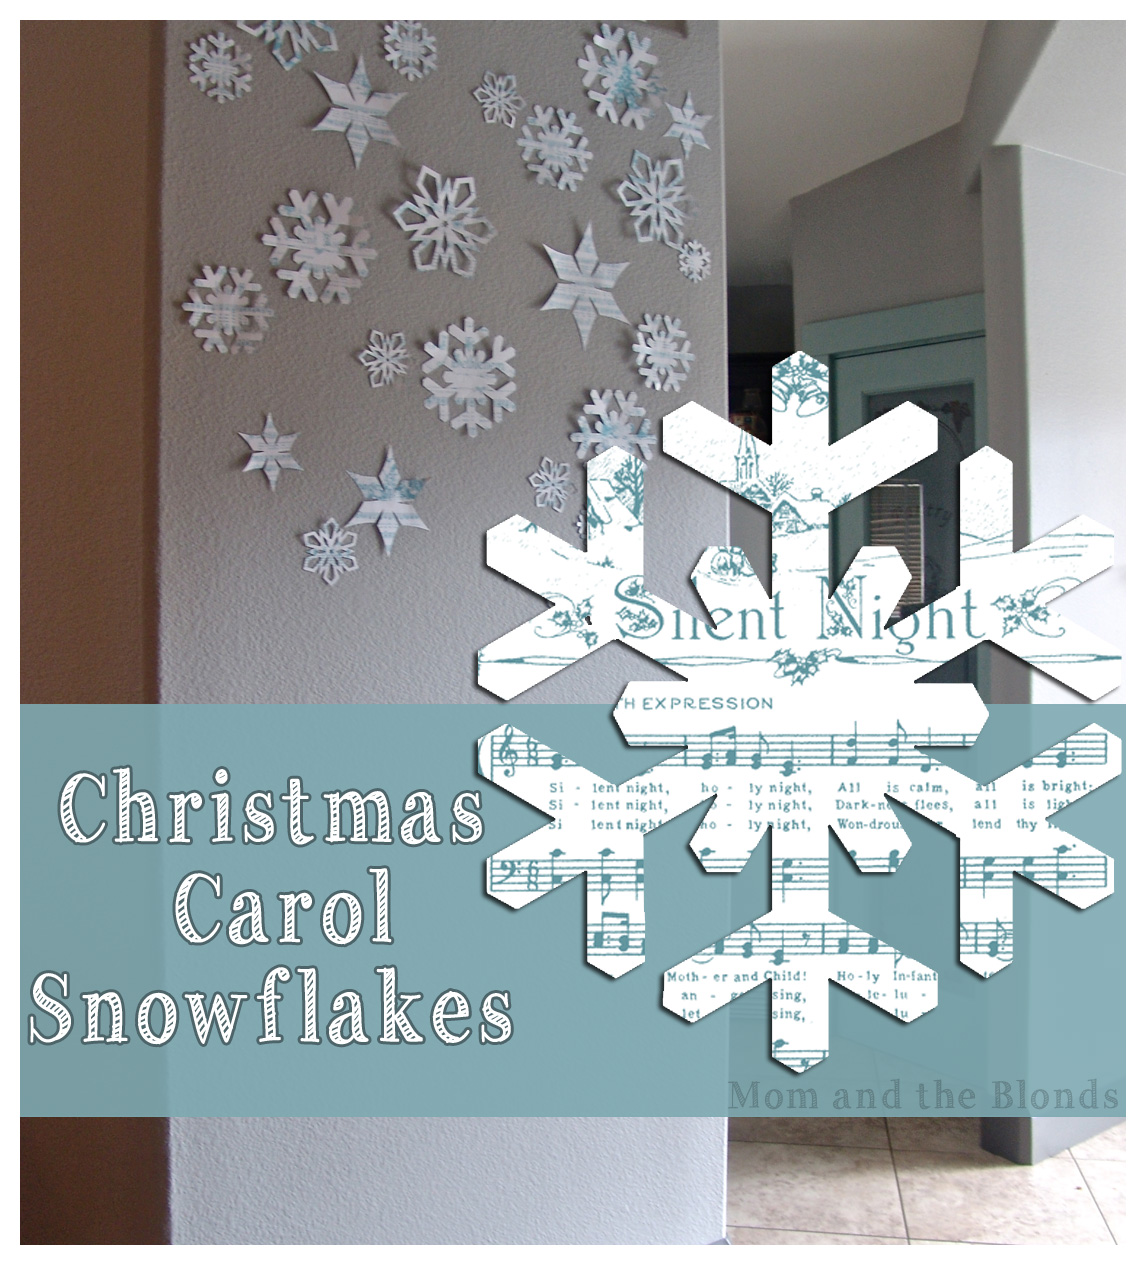 From the Carriage House: ** Christmas Carol Snowflakes **